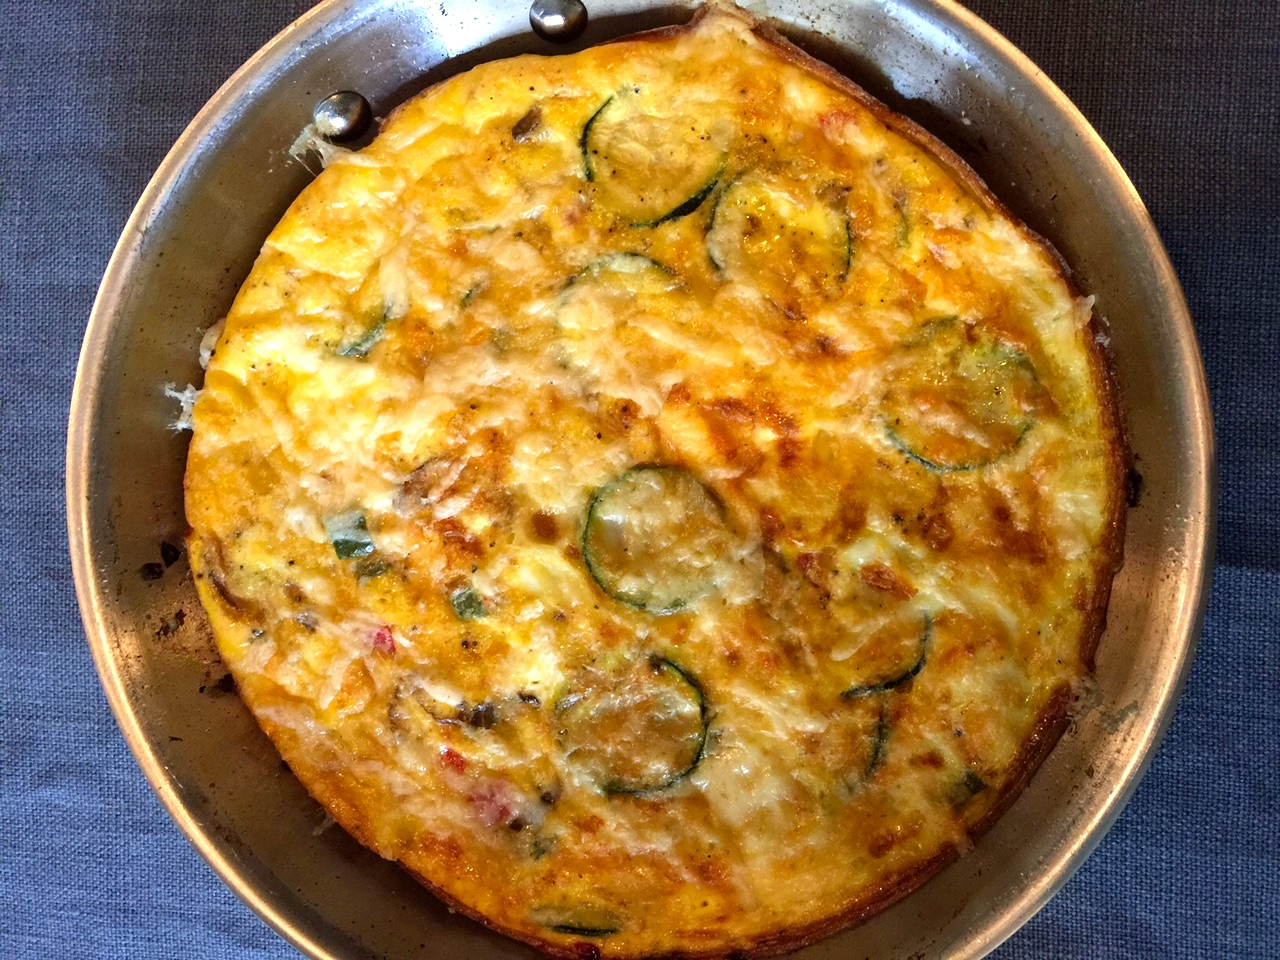 finished frittata in skillet